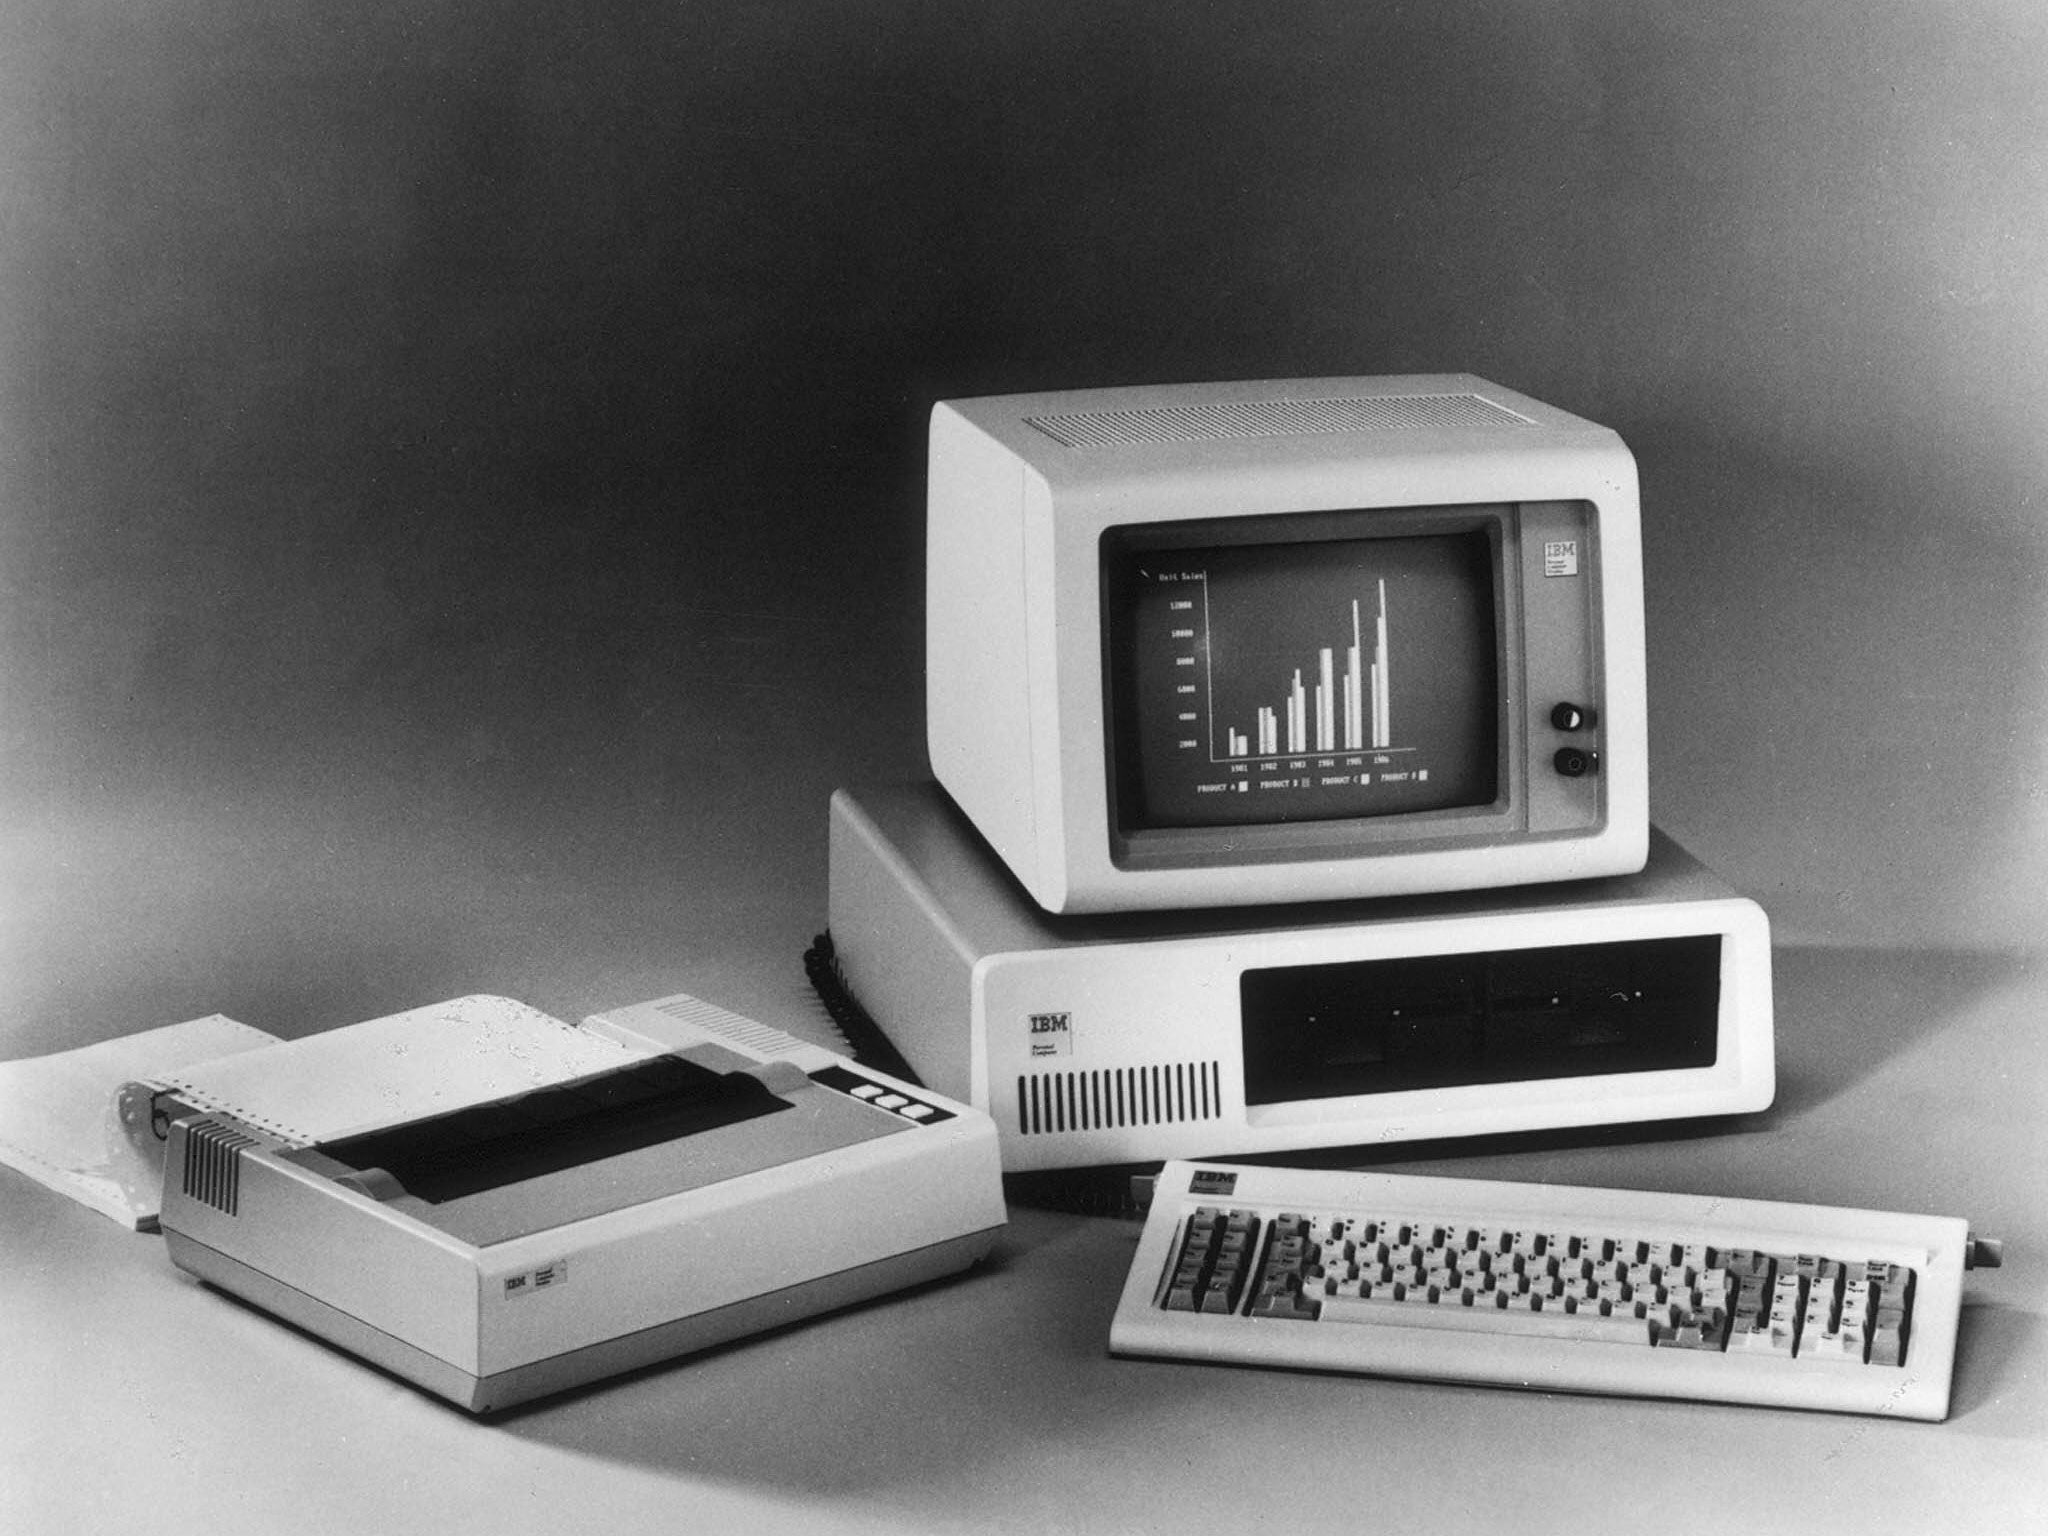 The End Of Moores Law Why Theory That Computer Processors Will Typical Circuit Board Found In All Electronic Products Today 1 Ibm Pc 1981 Ibms First Proper Effort At Home Computing Was So Successful It Popularised Term Could Be Connected To Users Tv